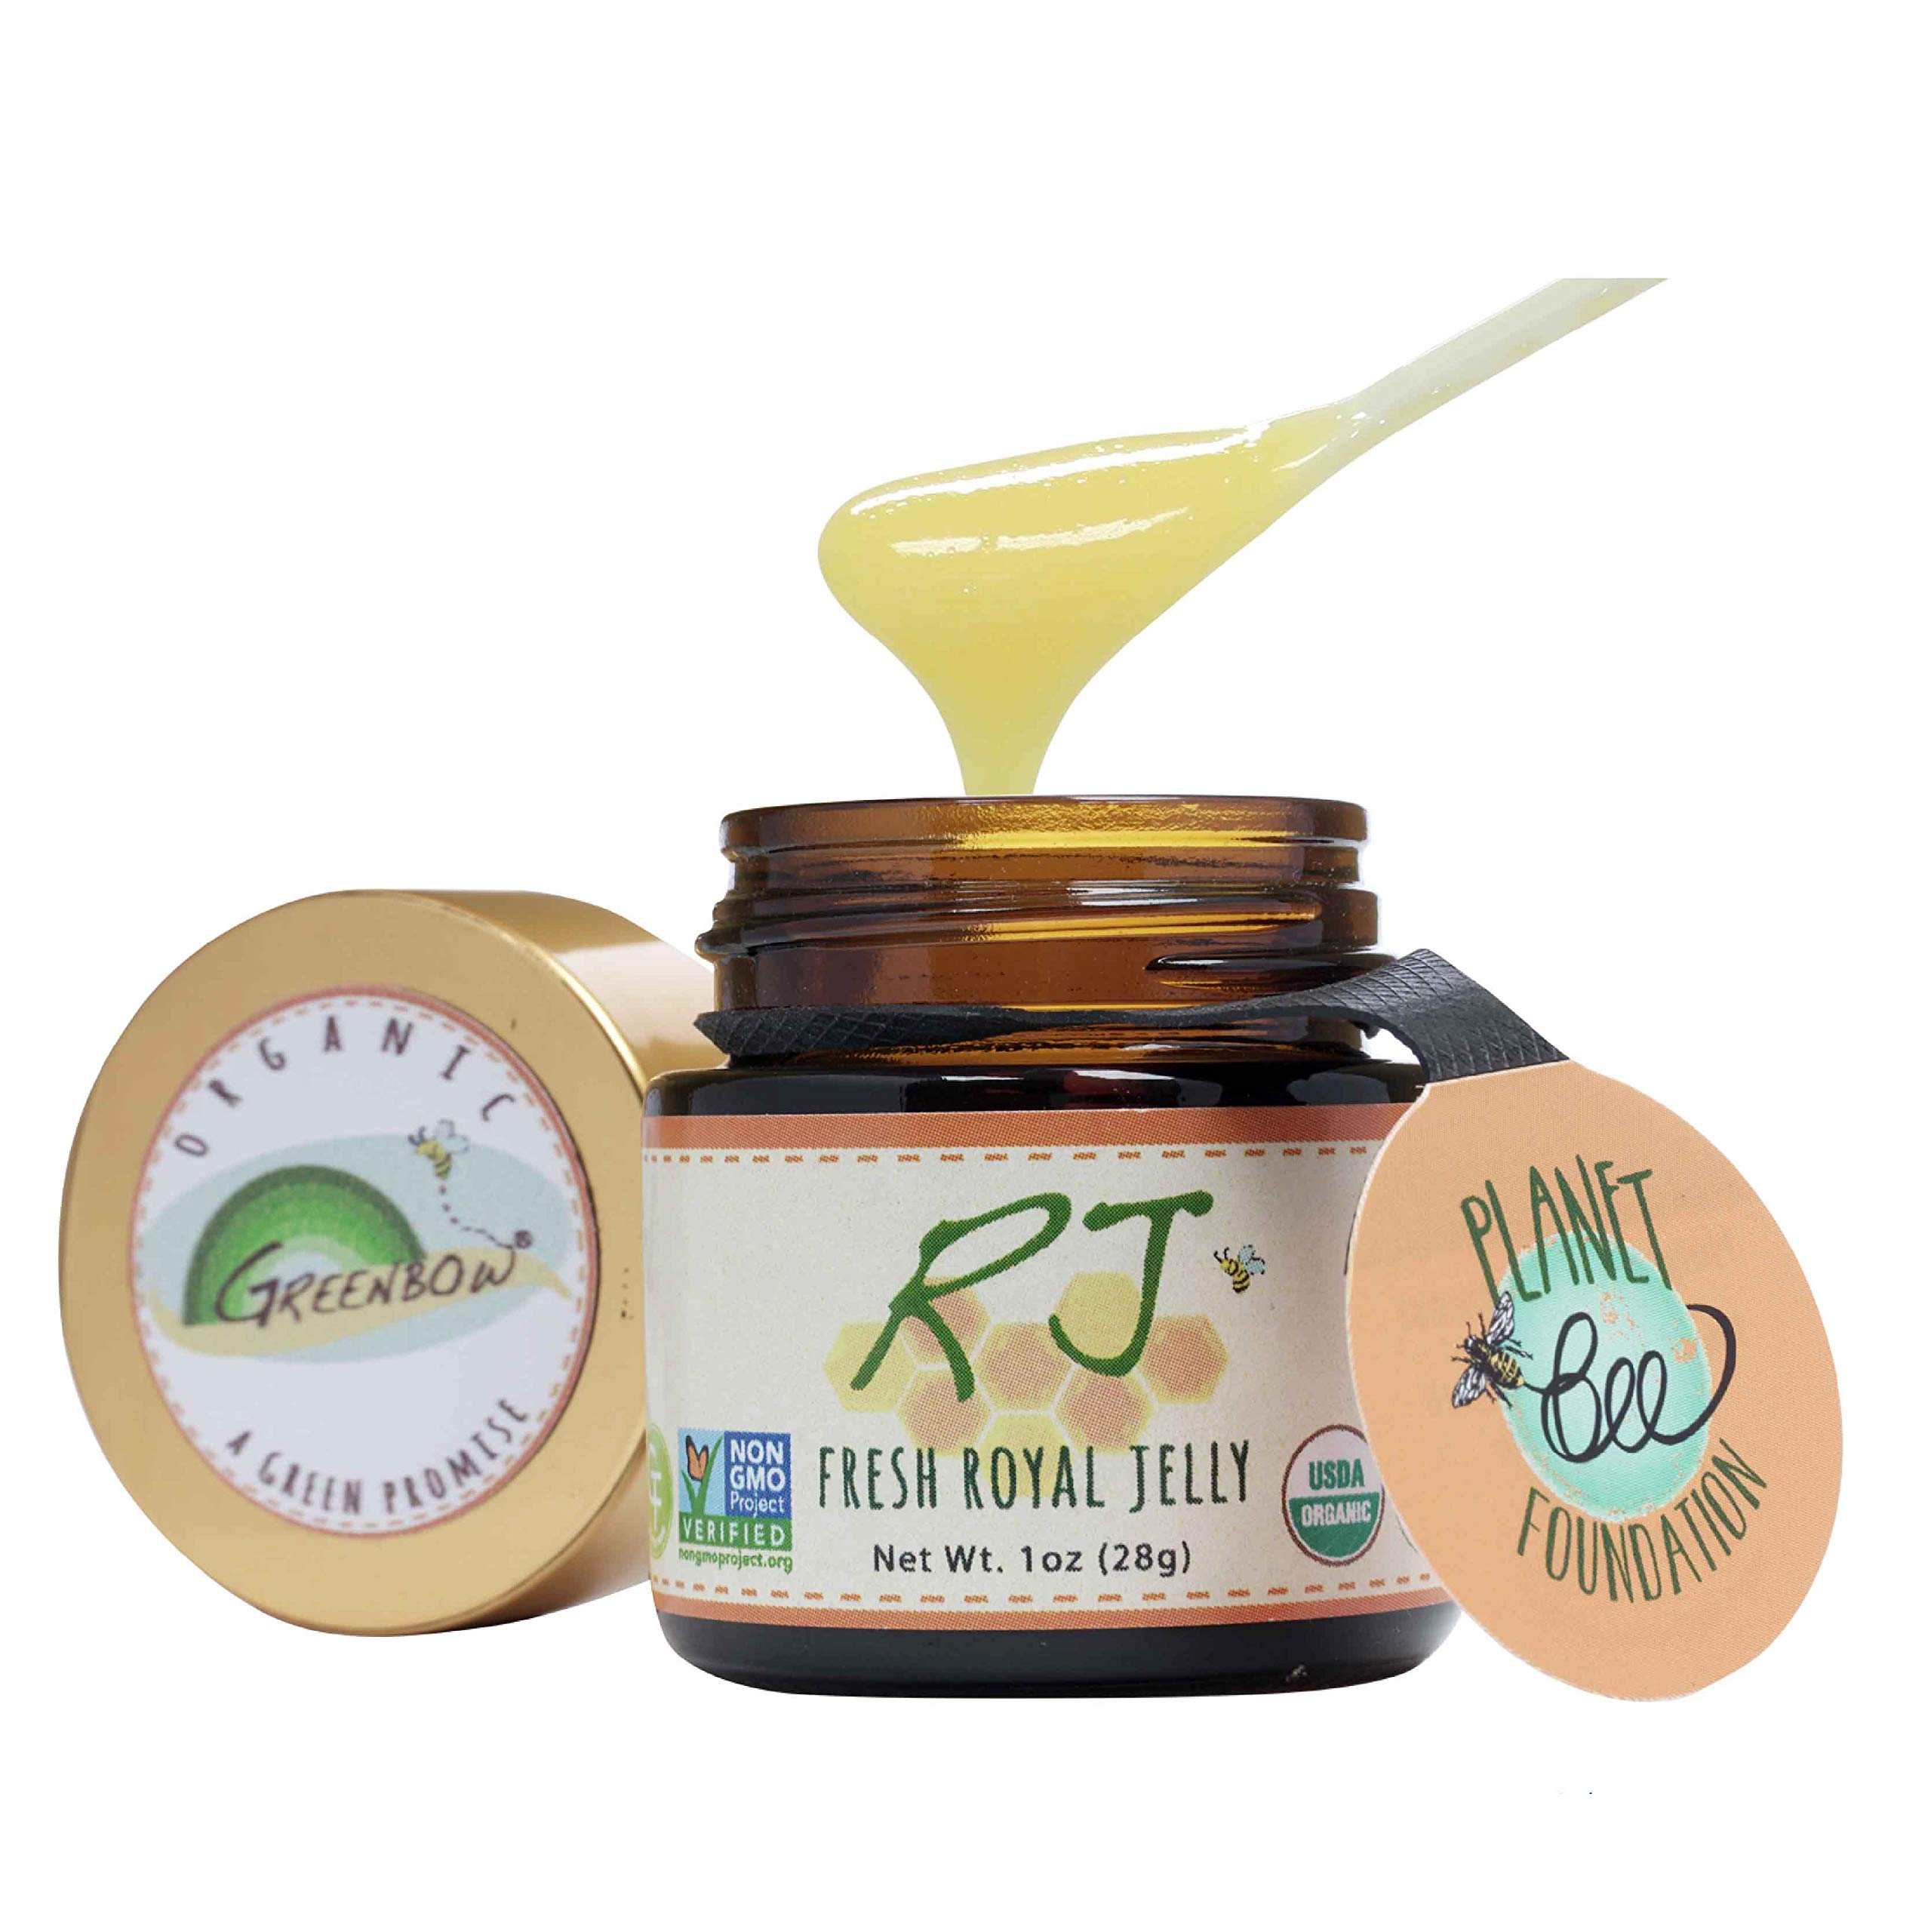 GREENBOW Organic Fresh Royal Jelly - 100% USDA Certified Organic, Pure, Gluten Free, Non-GMO Royal Jelly - One of The Most Nutrition Packed Diet Supplements - (28g)